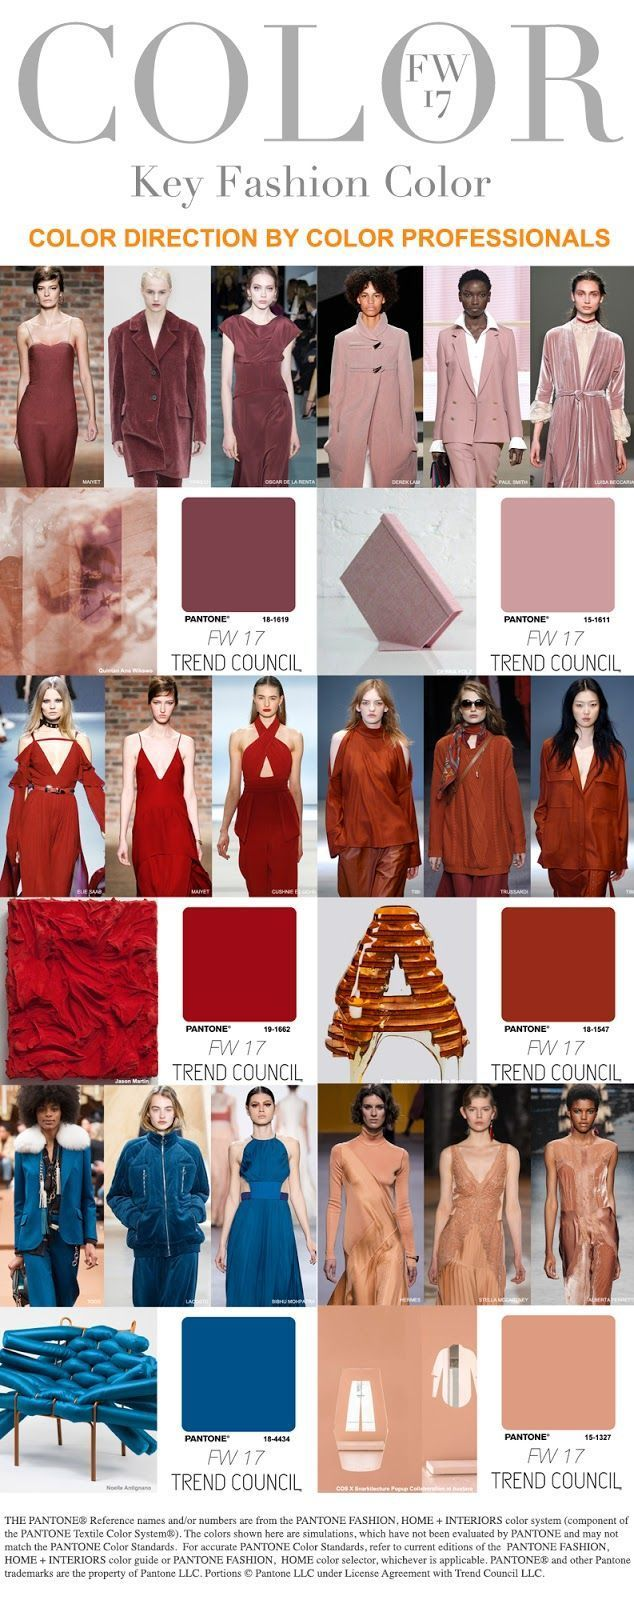 awesome TRENDS // TREND COUNCIL - COLORS . FW 2017 (FASHION VIGNETTE)